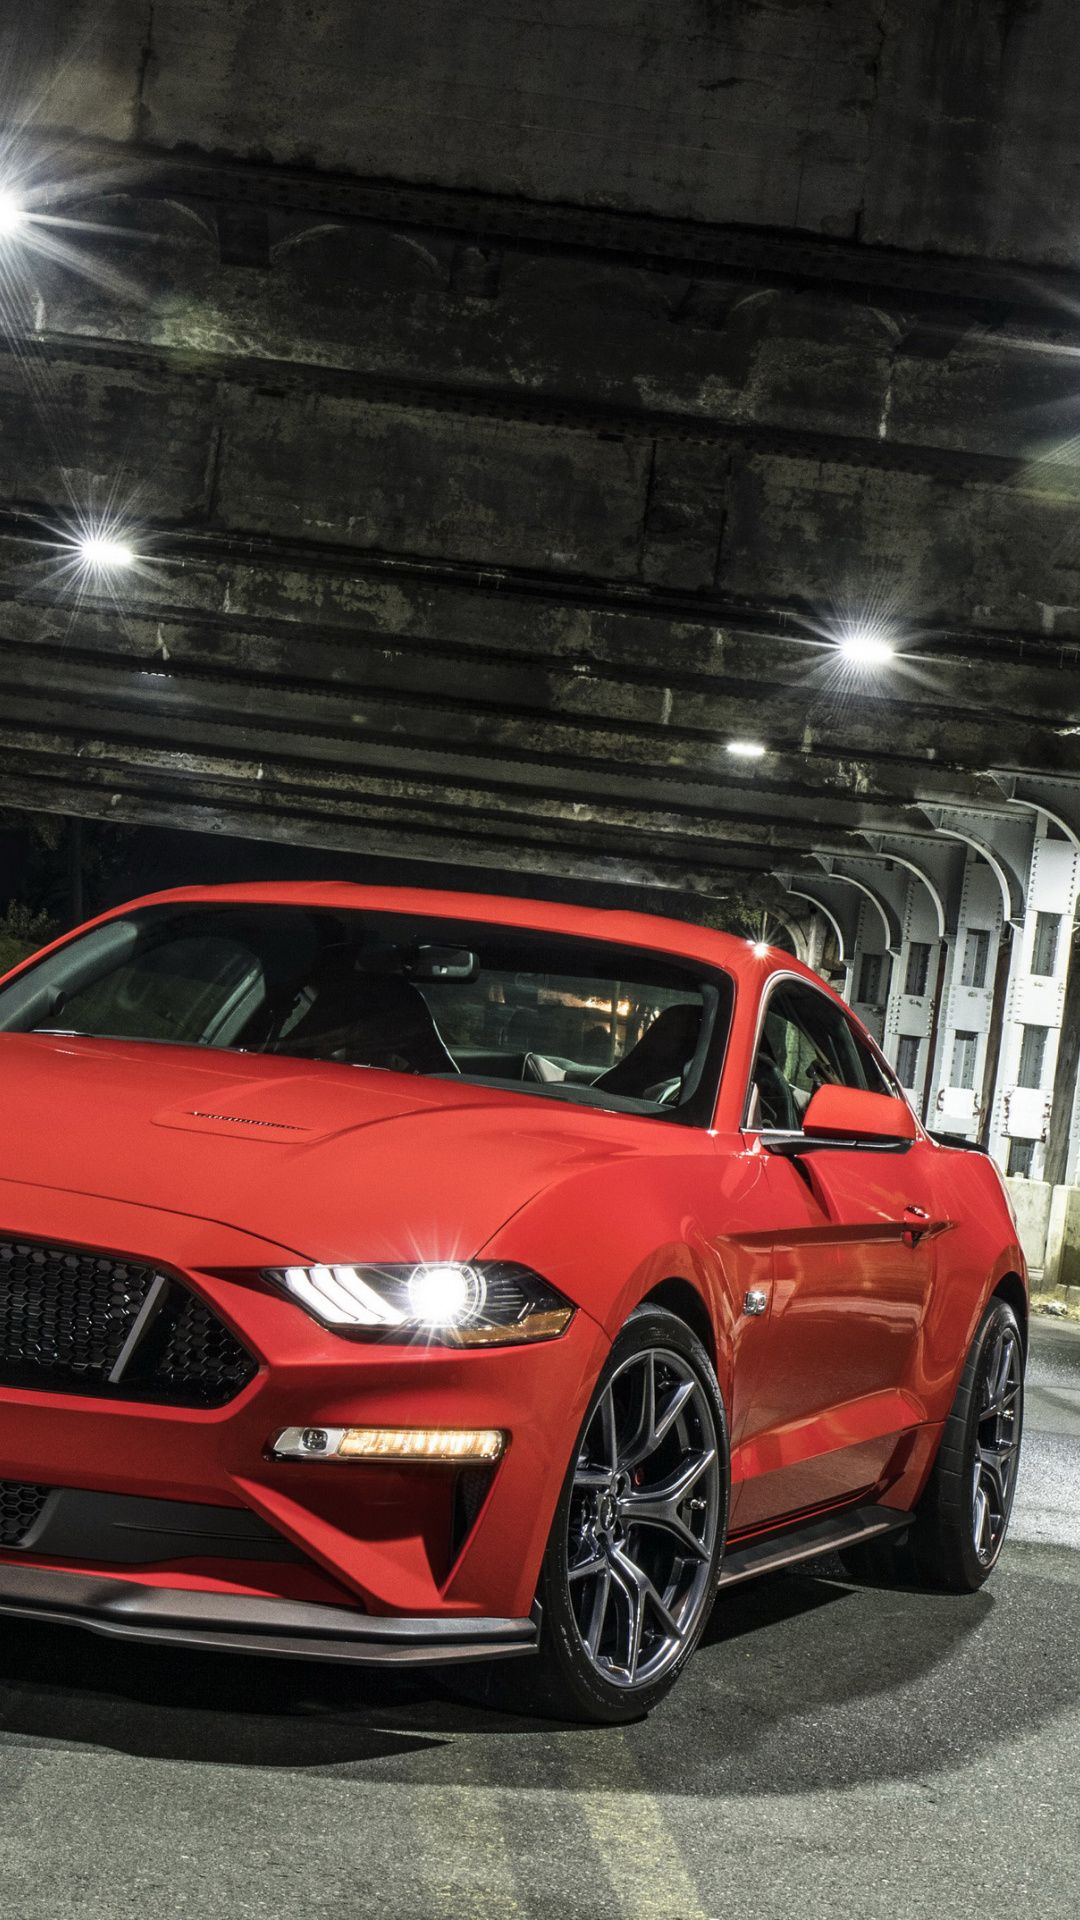 2018 Ford Mustang Gt Performance Package Level 2 Red Muscle Car